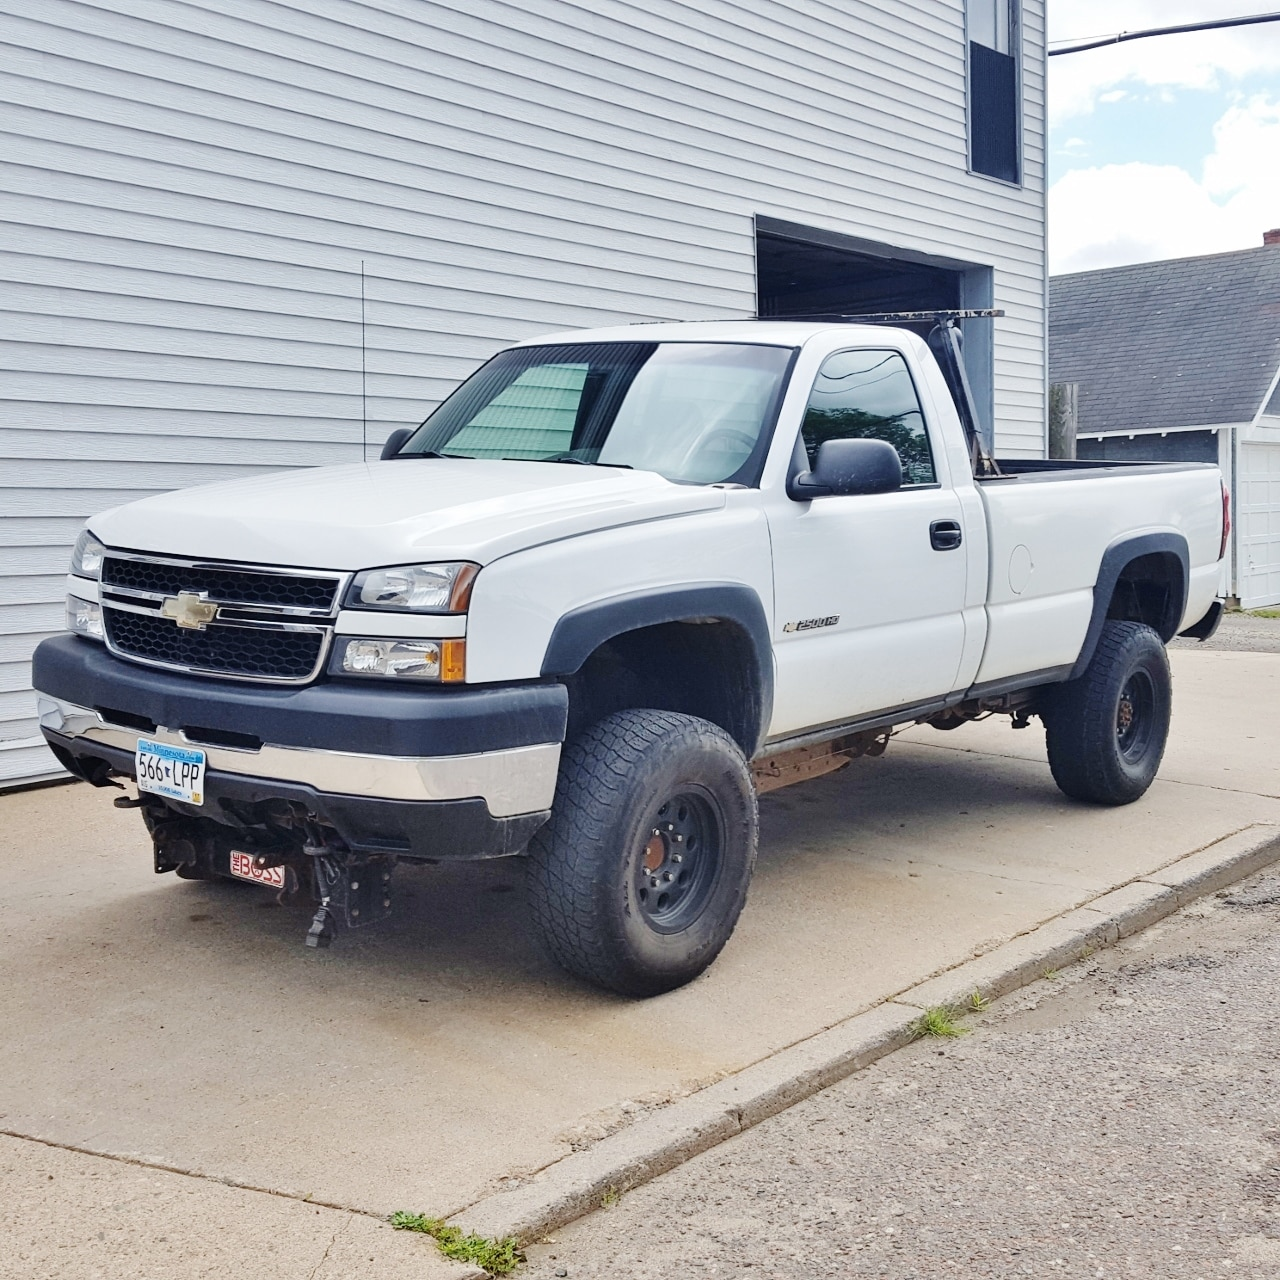 Vehicles For Sale In Ely, MN 55731